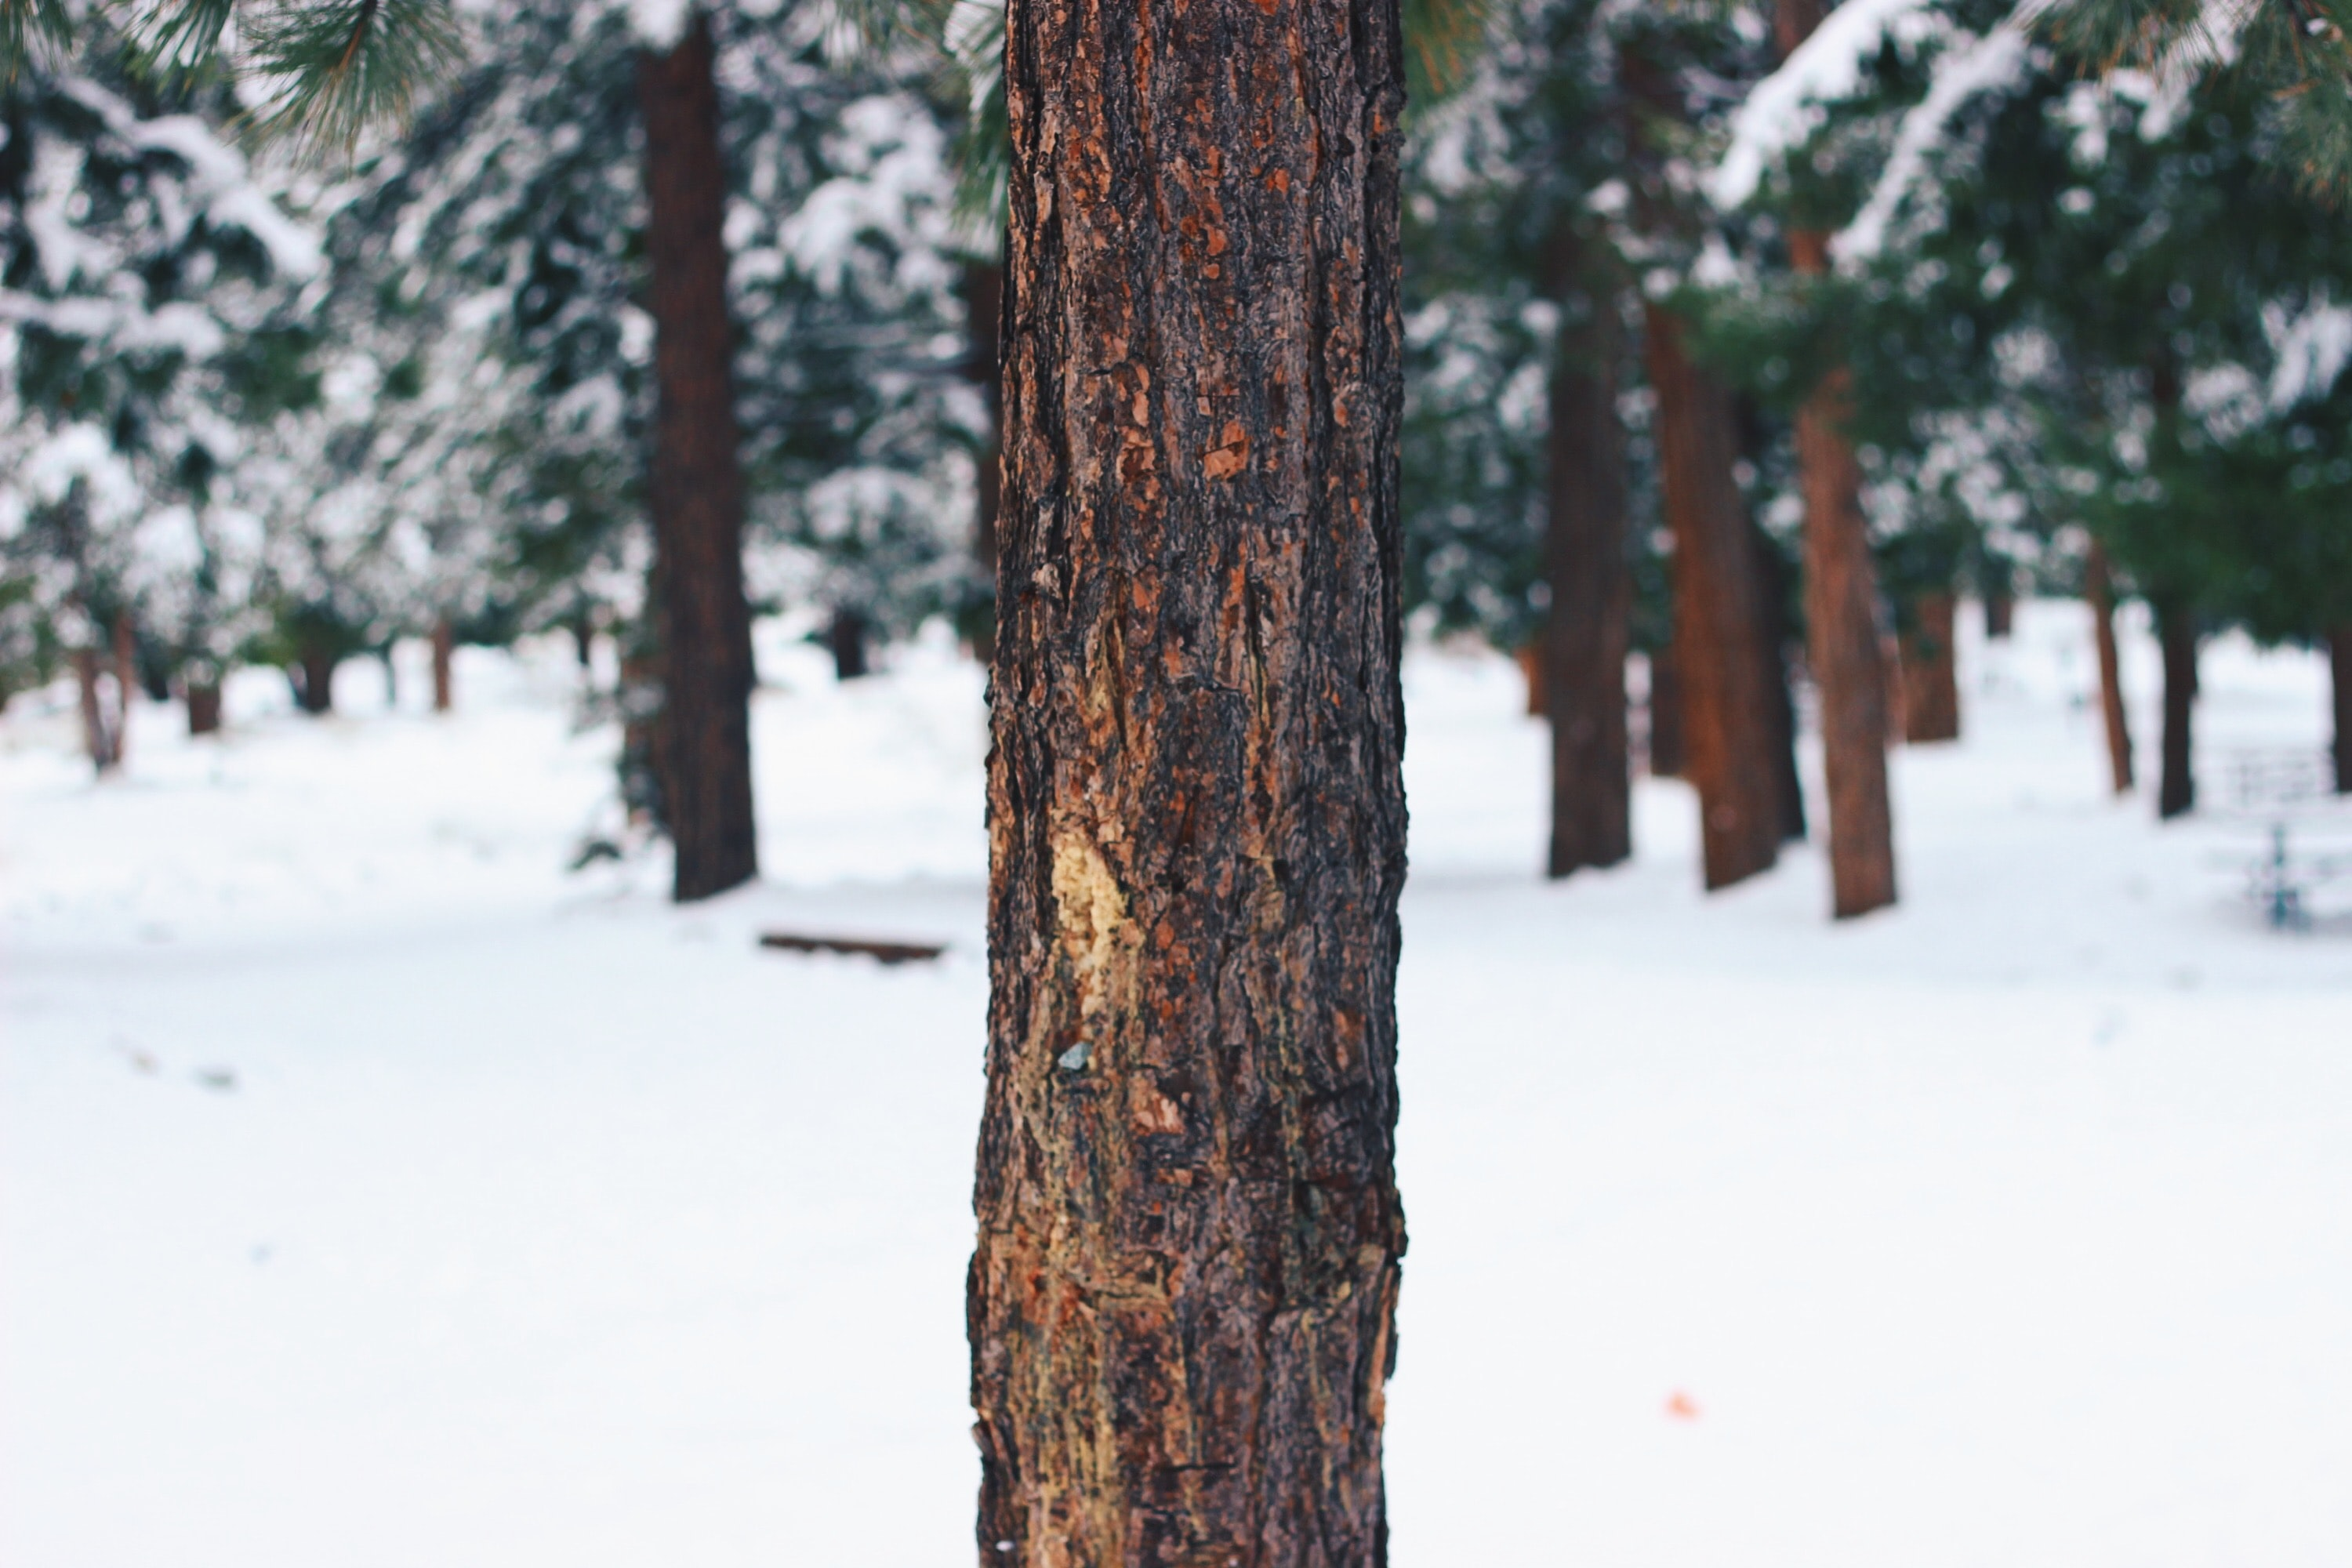 Close-up of the trunk of a conifer tree in a snow-covered forest